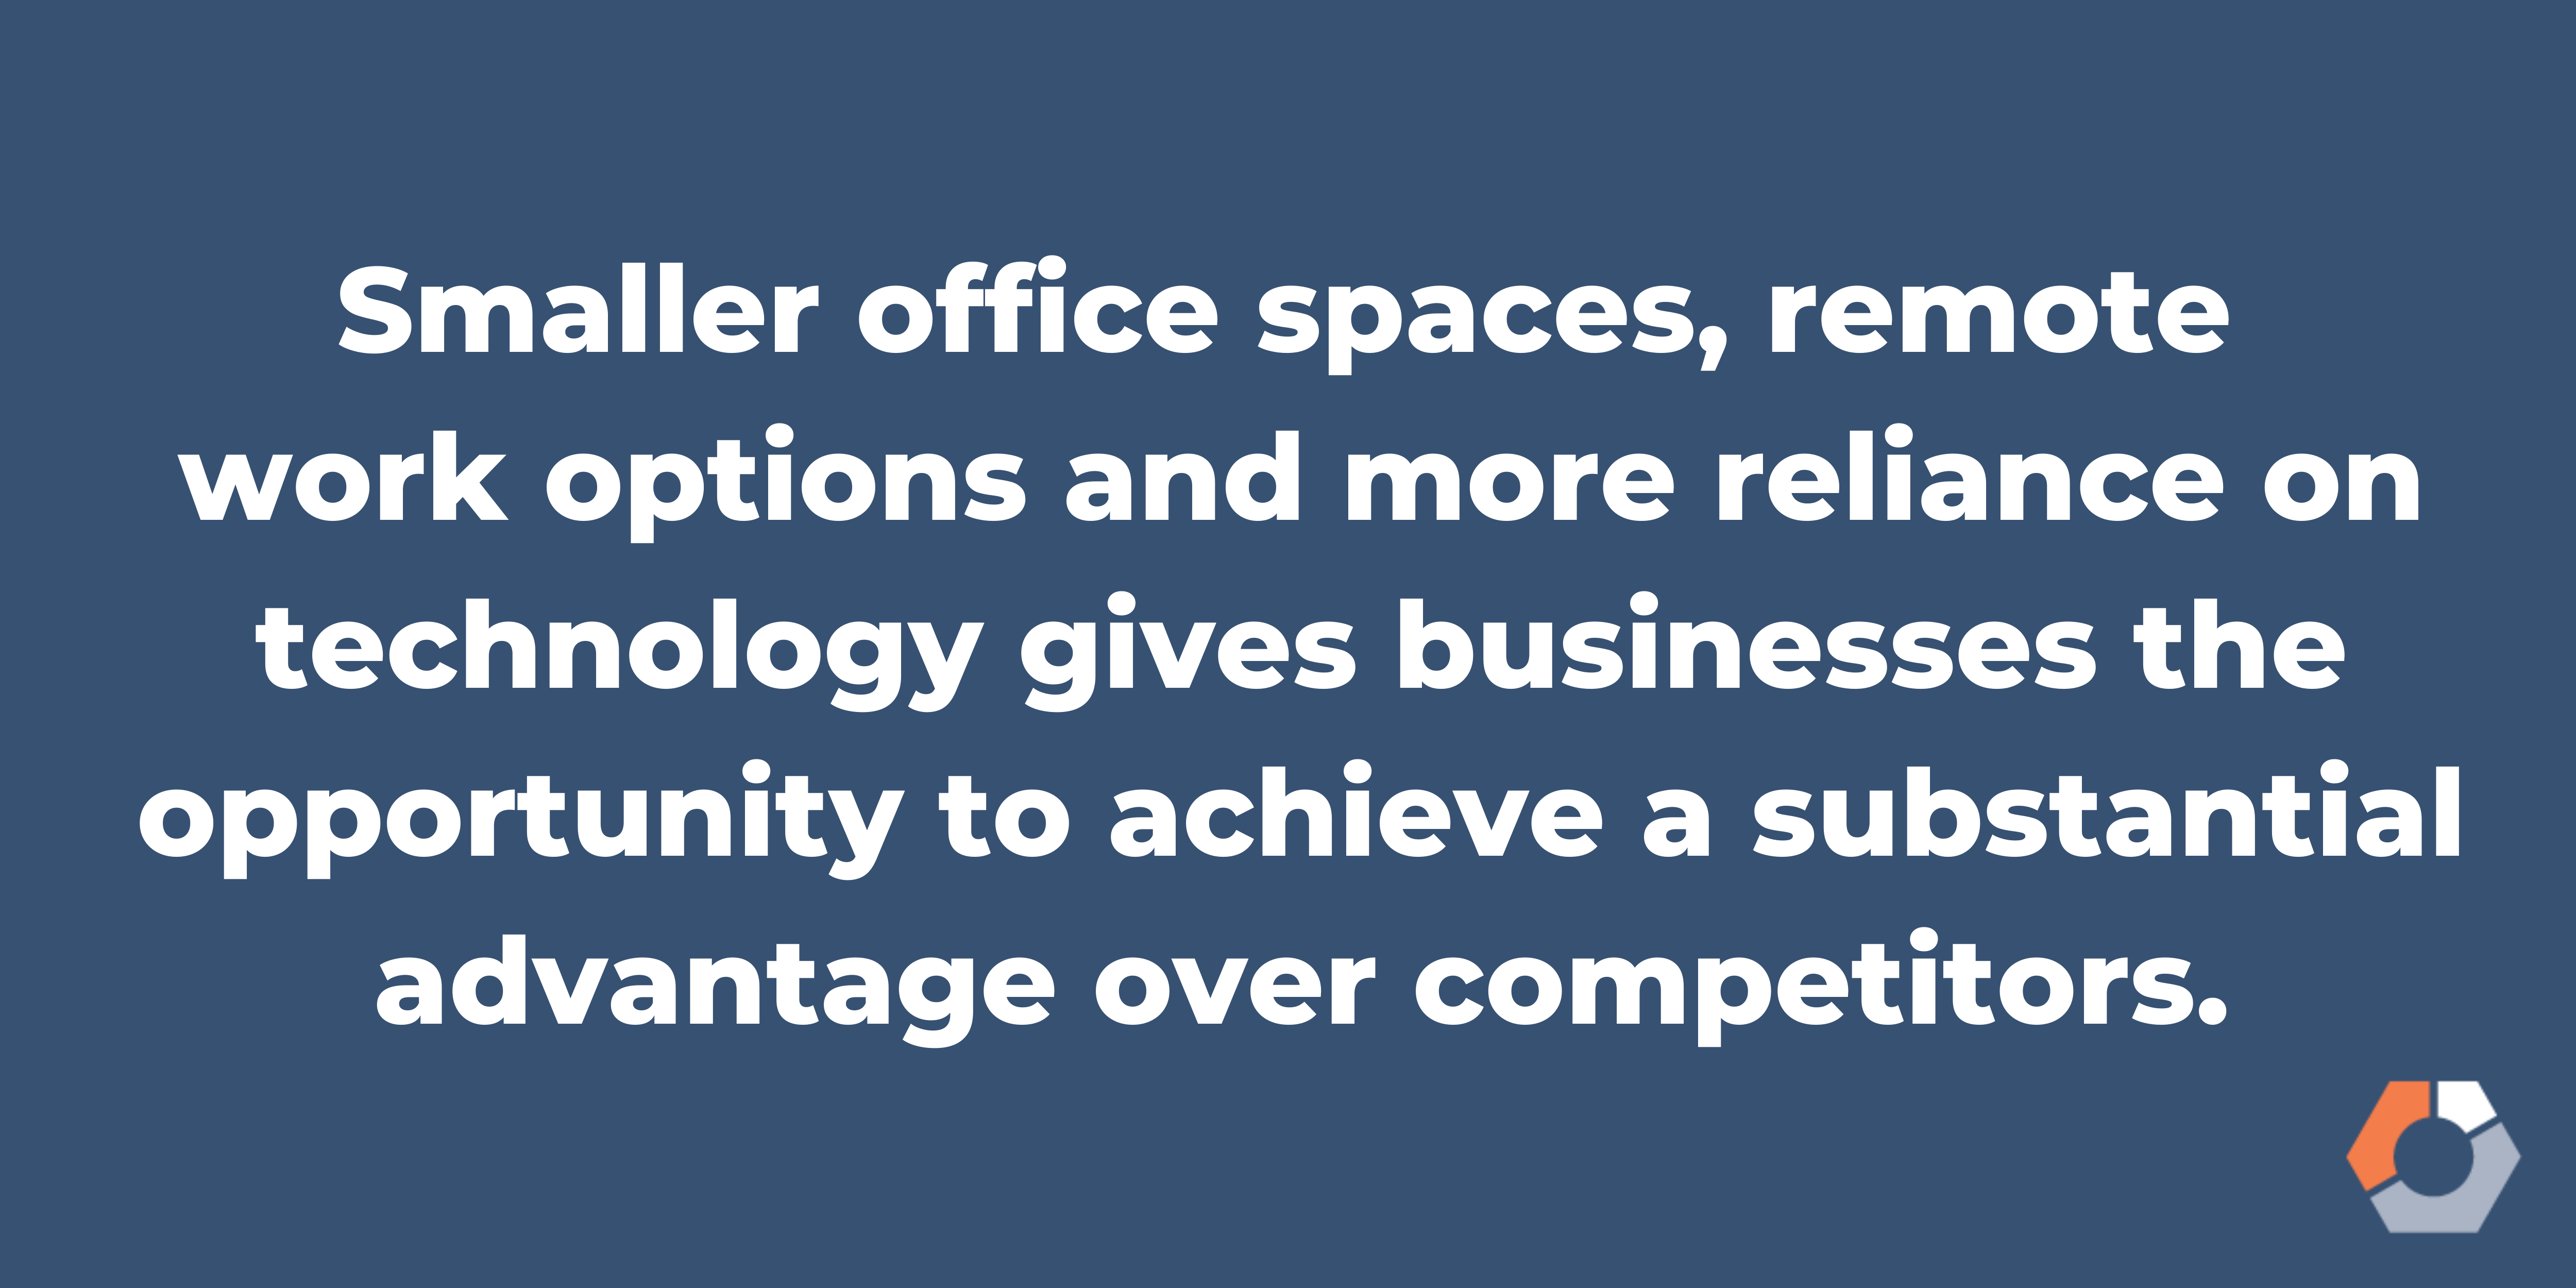 BlogImage3_TP_GoBiA statement suggests that the business landscape post-coronavirus may include smaller office spaces, remote work options and more reliance on technology, giving businesses substantial advantage over competitors.g_05072020 (1)